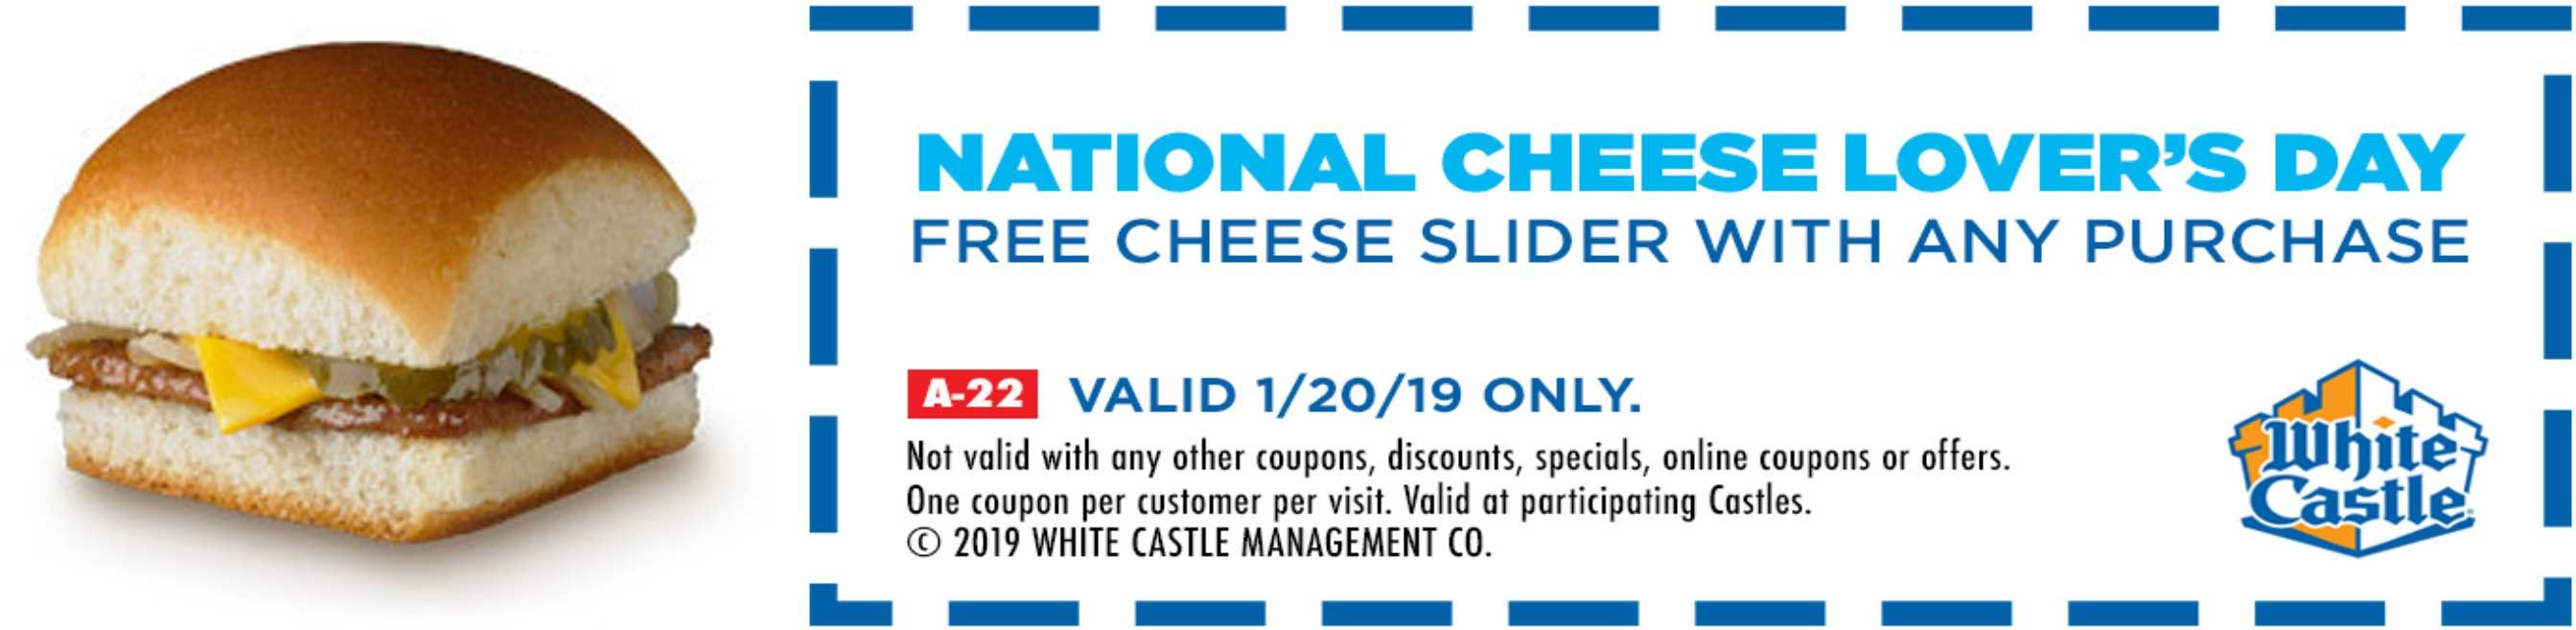 White Castle Coupons Shopping Deals Shopping Coupons White Castle Coupons National Cheese Lovers Day